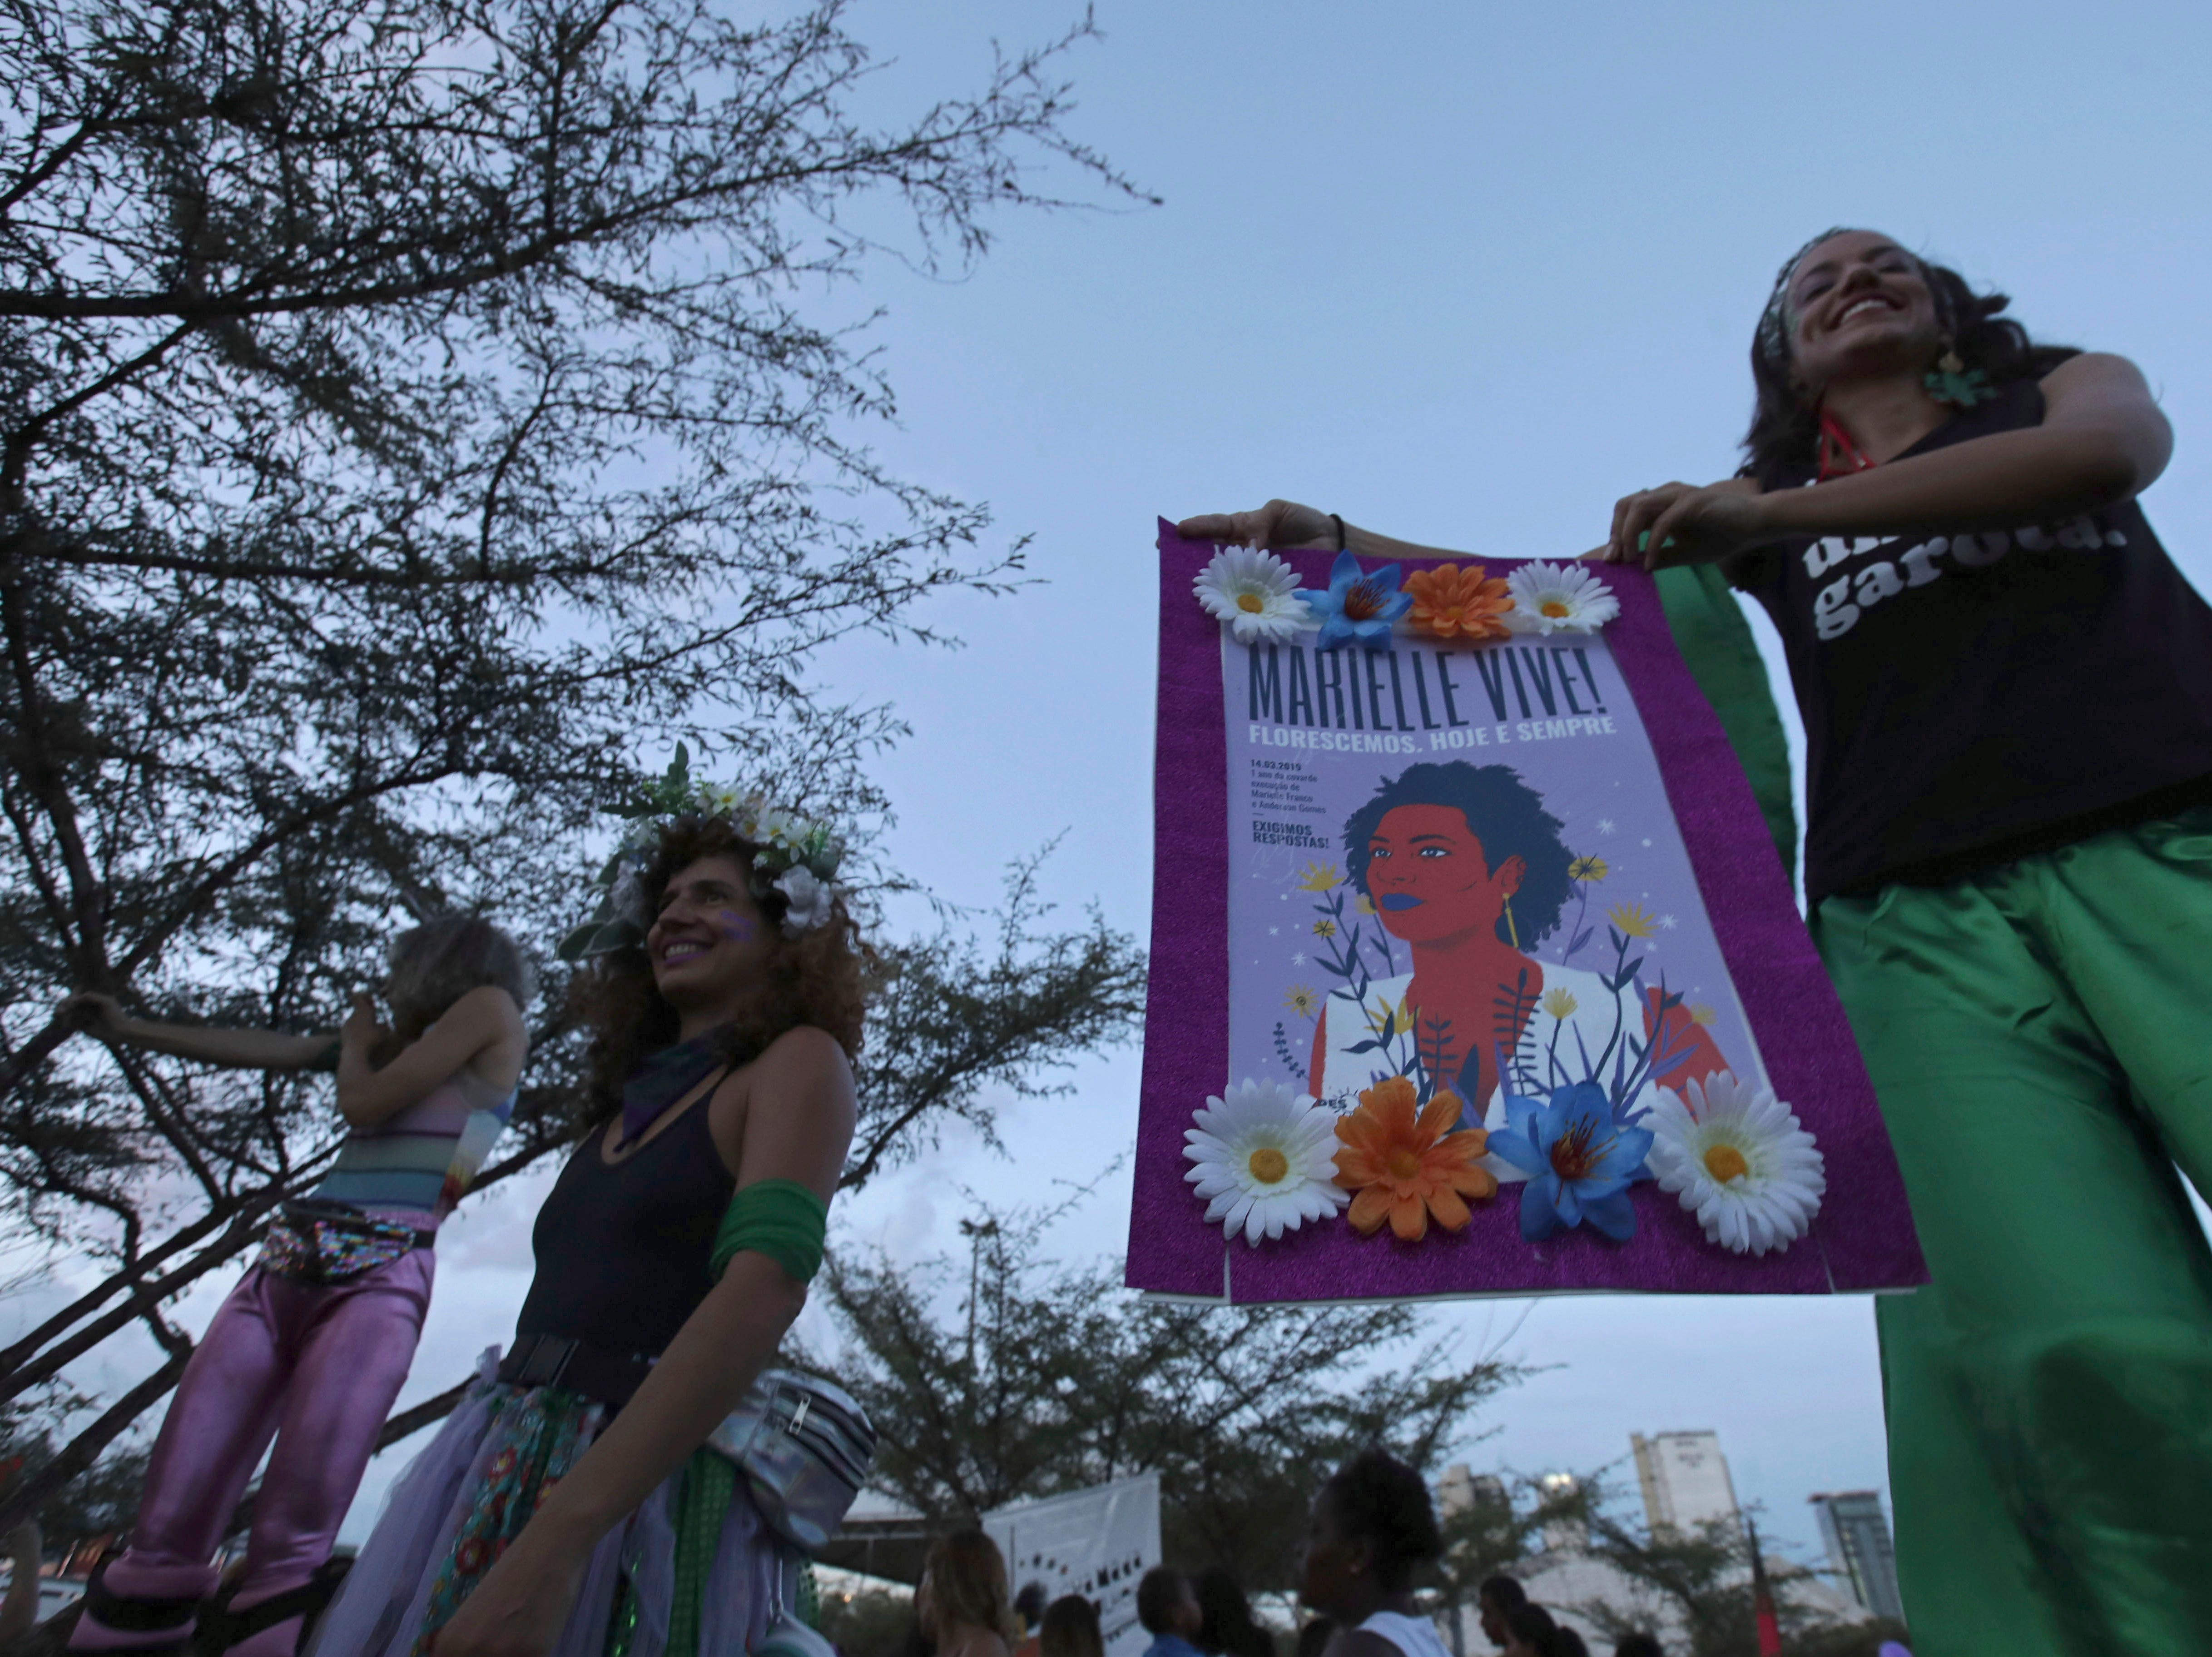 A woman carries a poster with an image of slain councilwoman Marielle Franco, during the March in Defense of Women's Rights, in celebration of International Women's Day, in Brasilia, Brazil, Friday, March 8, 2019. (AP Photo/Eraldo Peres)